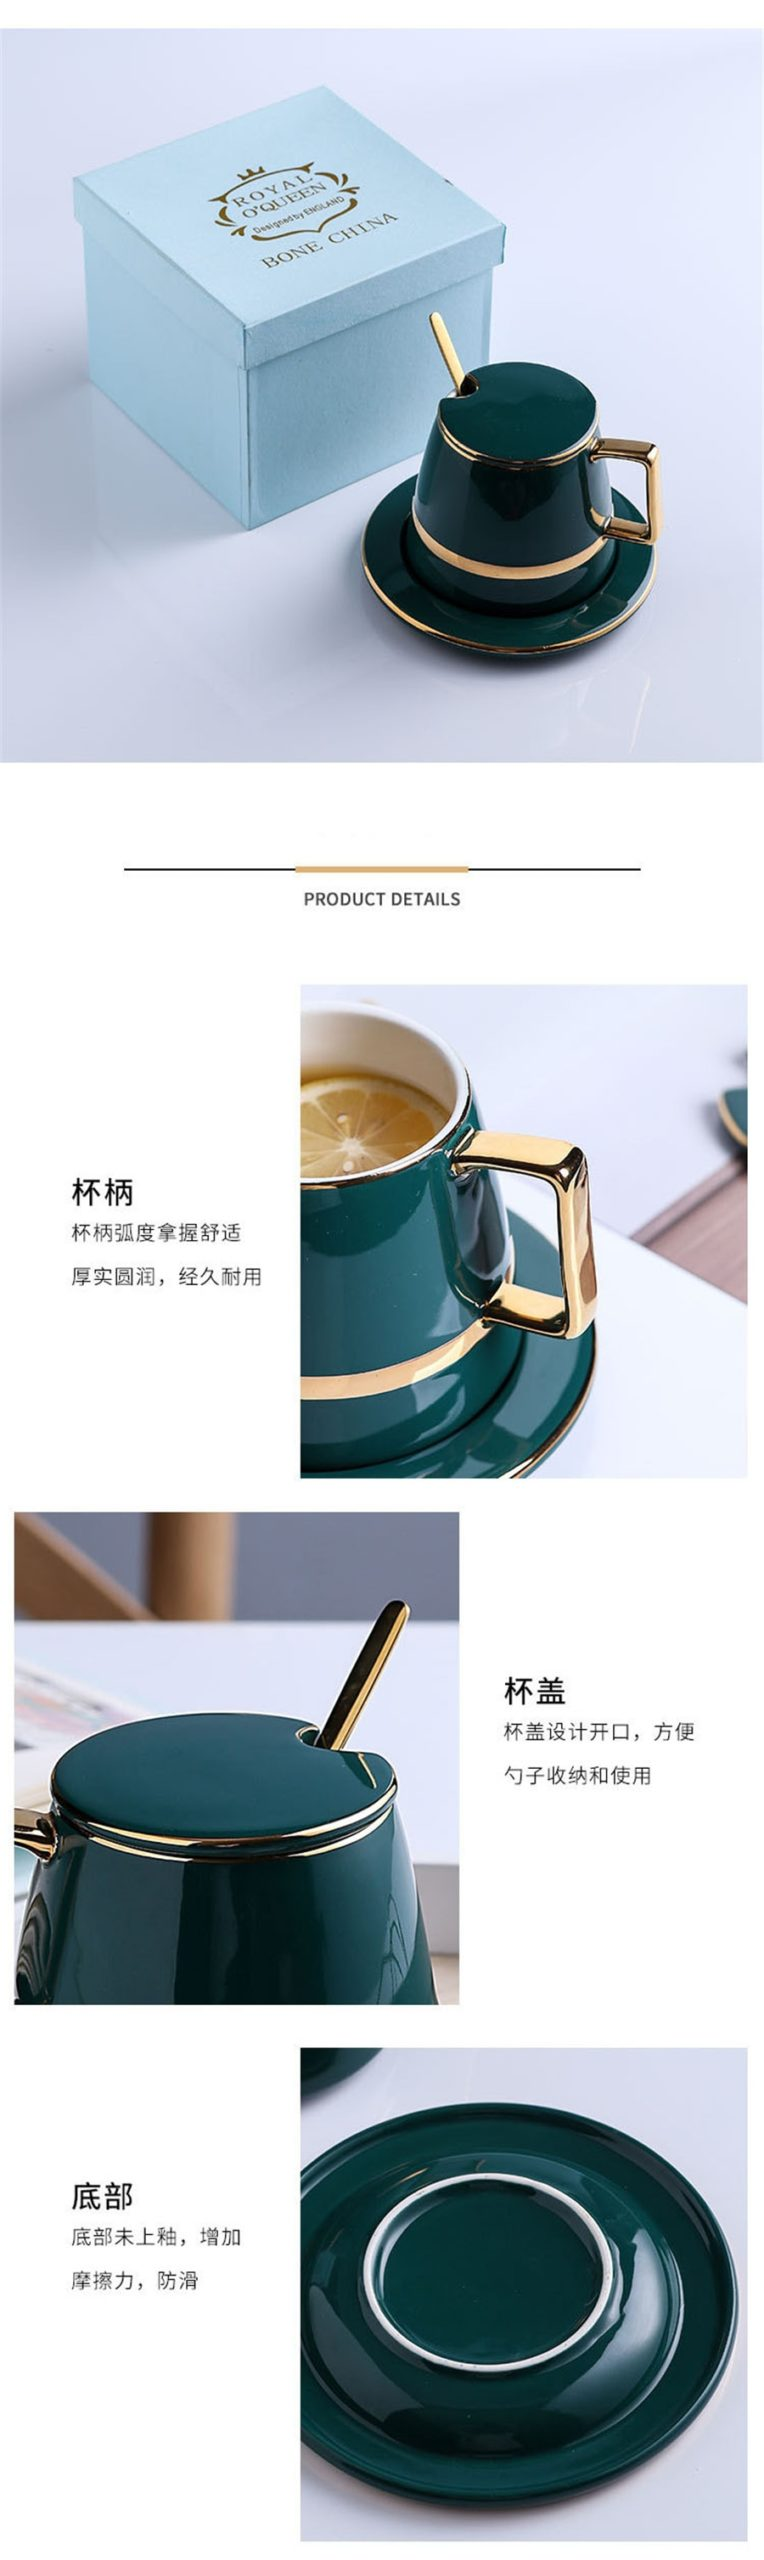 Creative Coffee Cup and Saucer Set Ceramic Breakfast Milk Cup Afternoon Tea Cup European Simple Style Water Cafe Cup with Handle